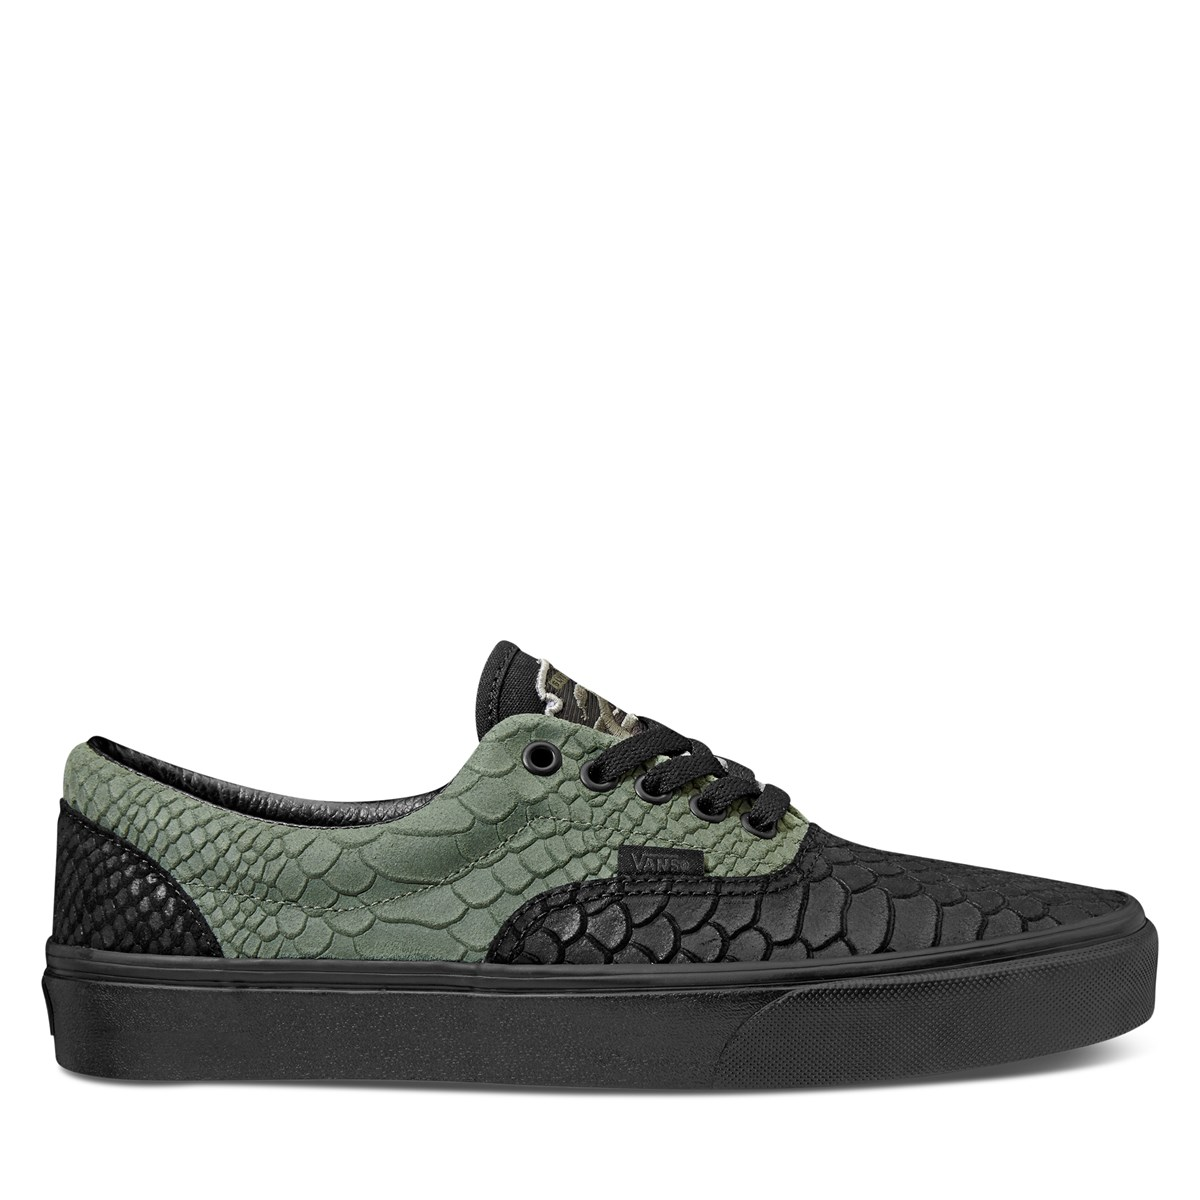 Era Harry Potter Slytherin Sneakers